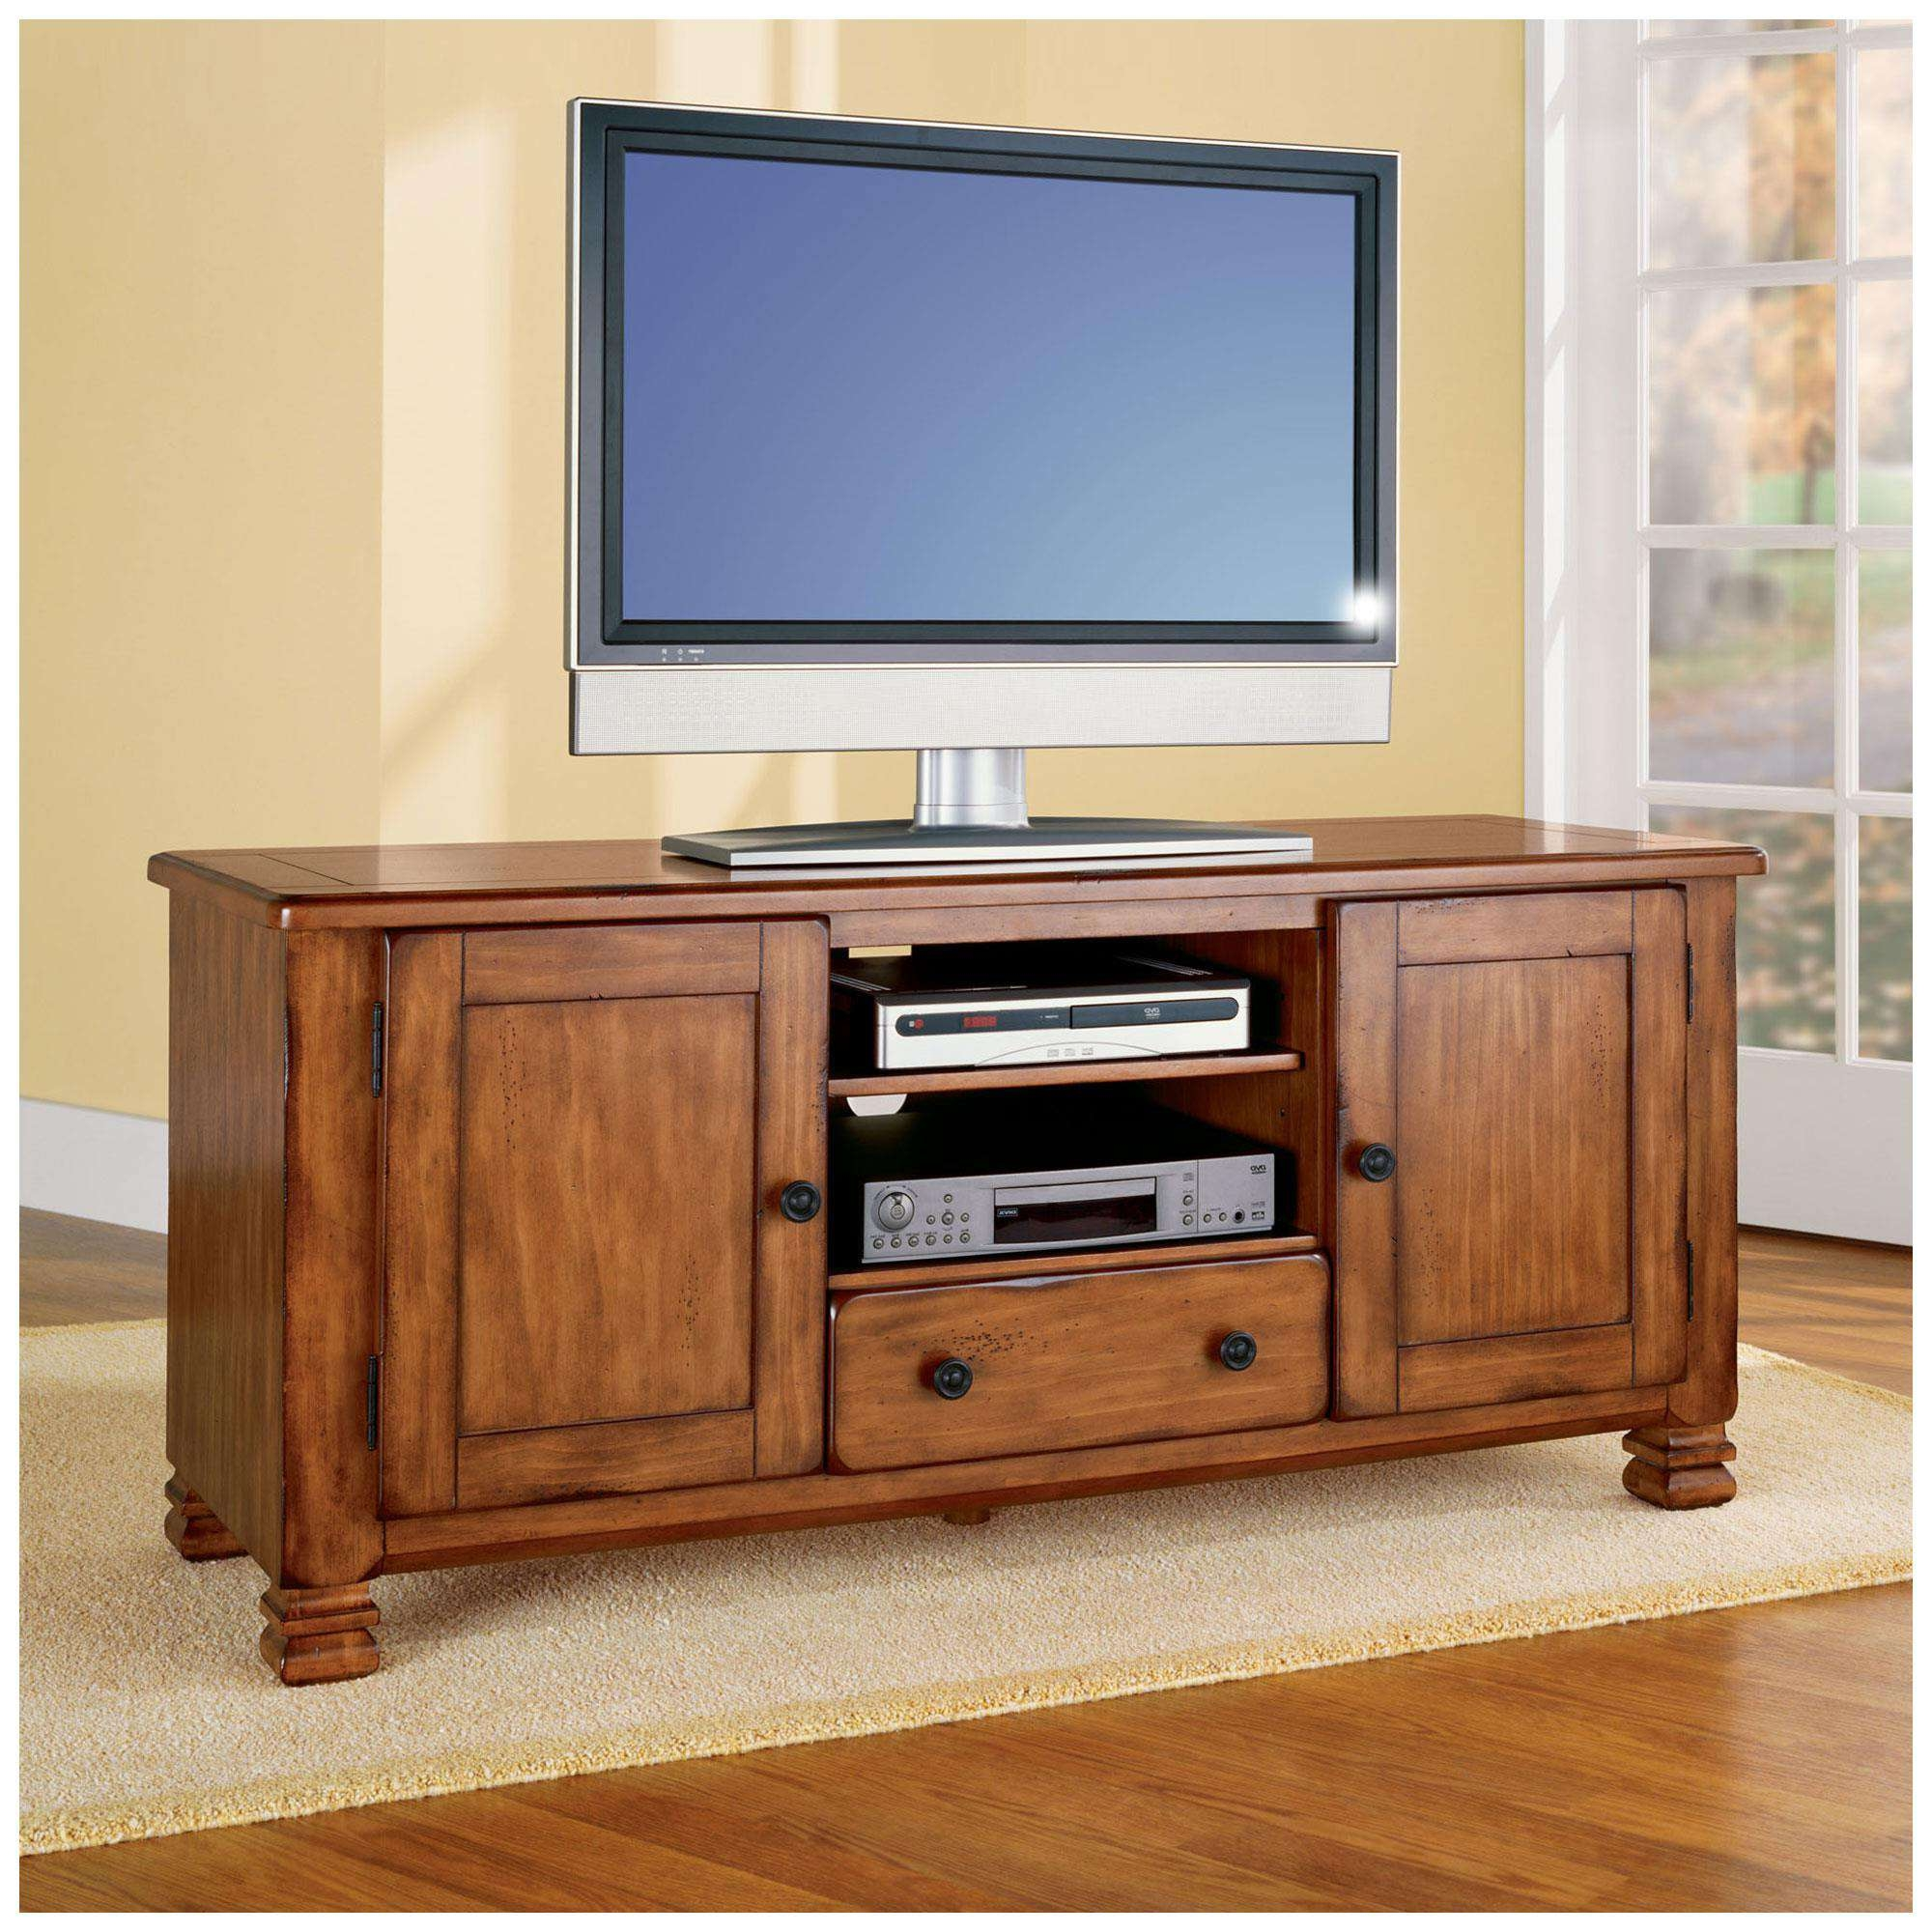 Open Tv Stands Uncategorized Used File Cabinets For Sale Best Throughout Cherry Wood Tv Stands (View 6 of 15)